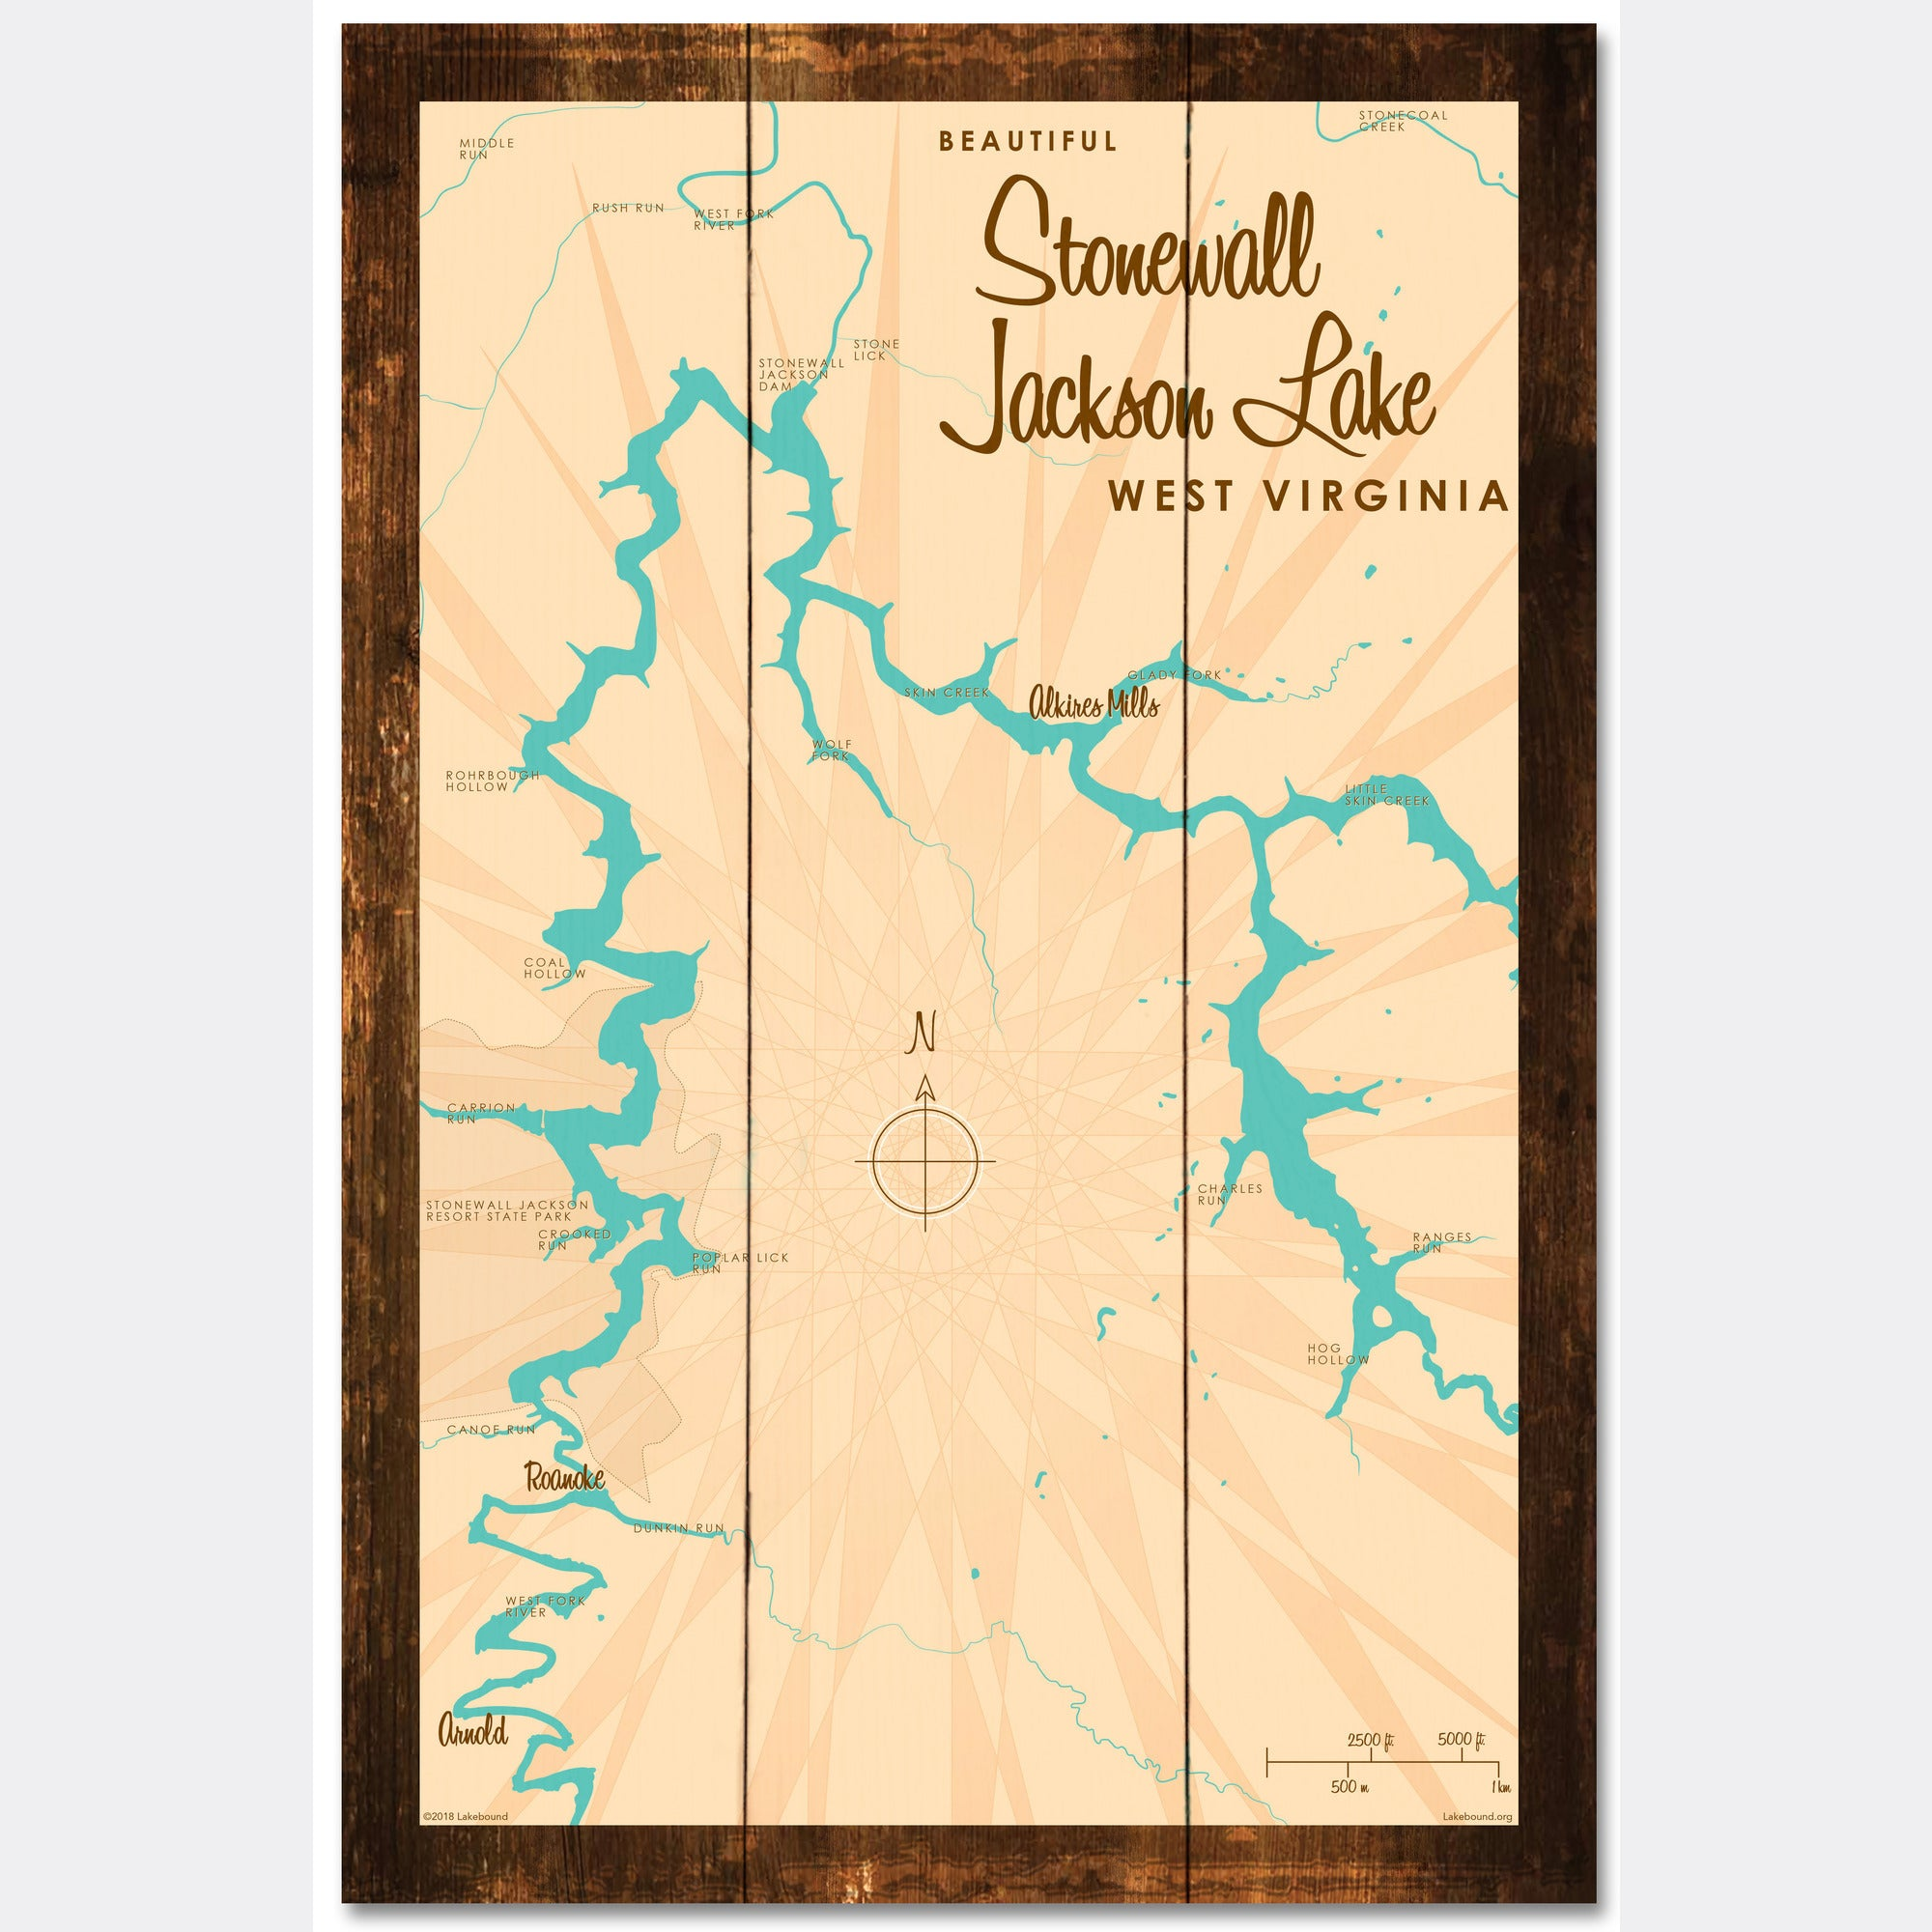 stonewall jackson lake map Stonewall Jackson Lake West Virginia Rustic Wood Sign Map Art stonewall jackson lake map